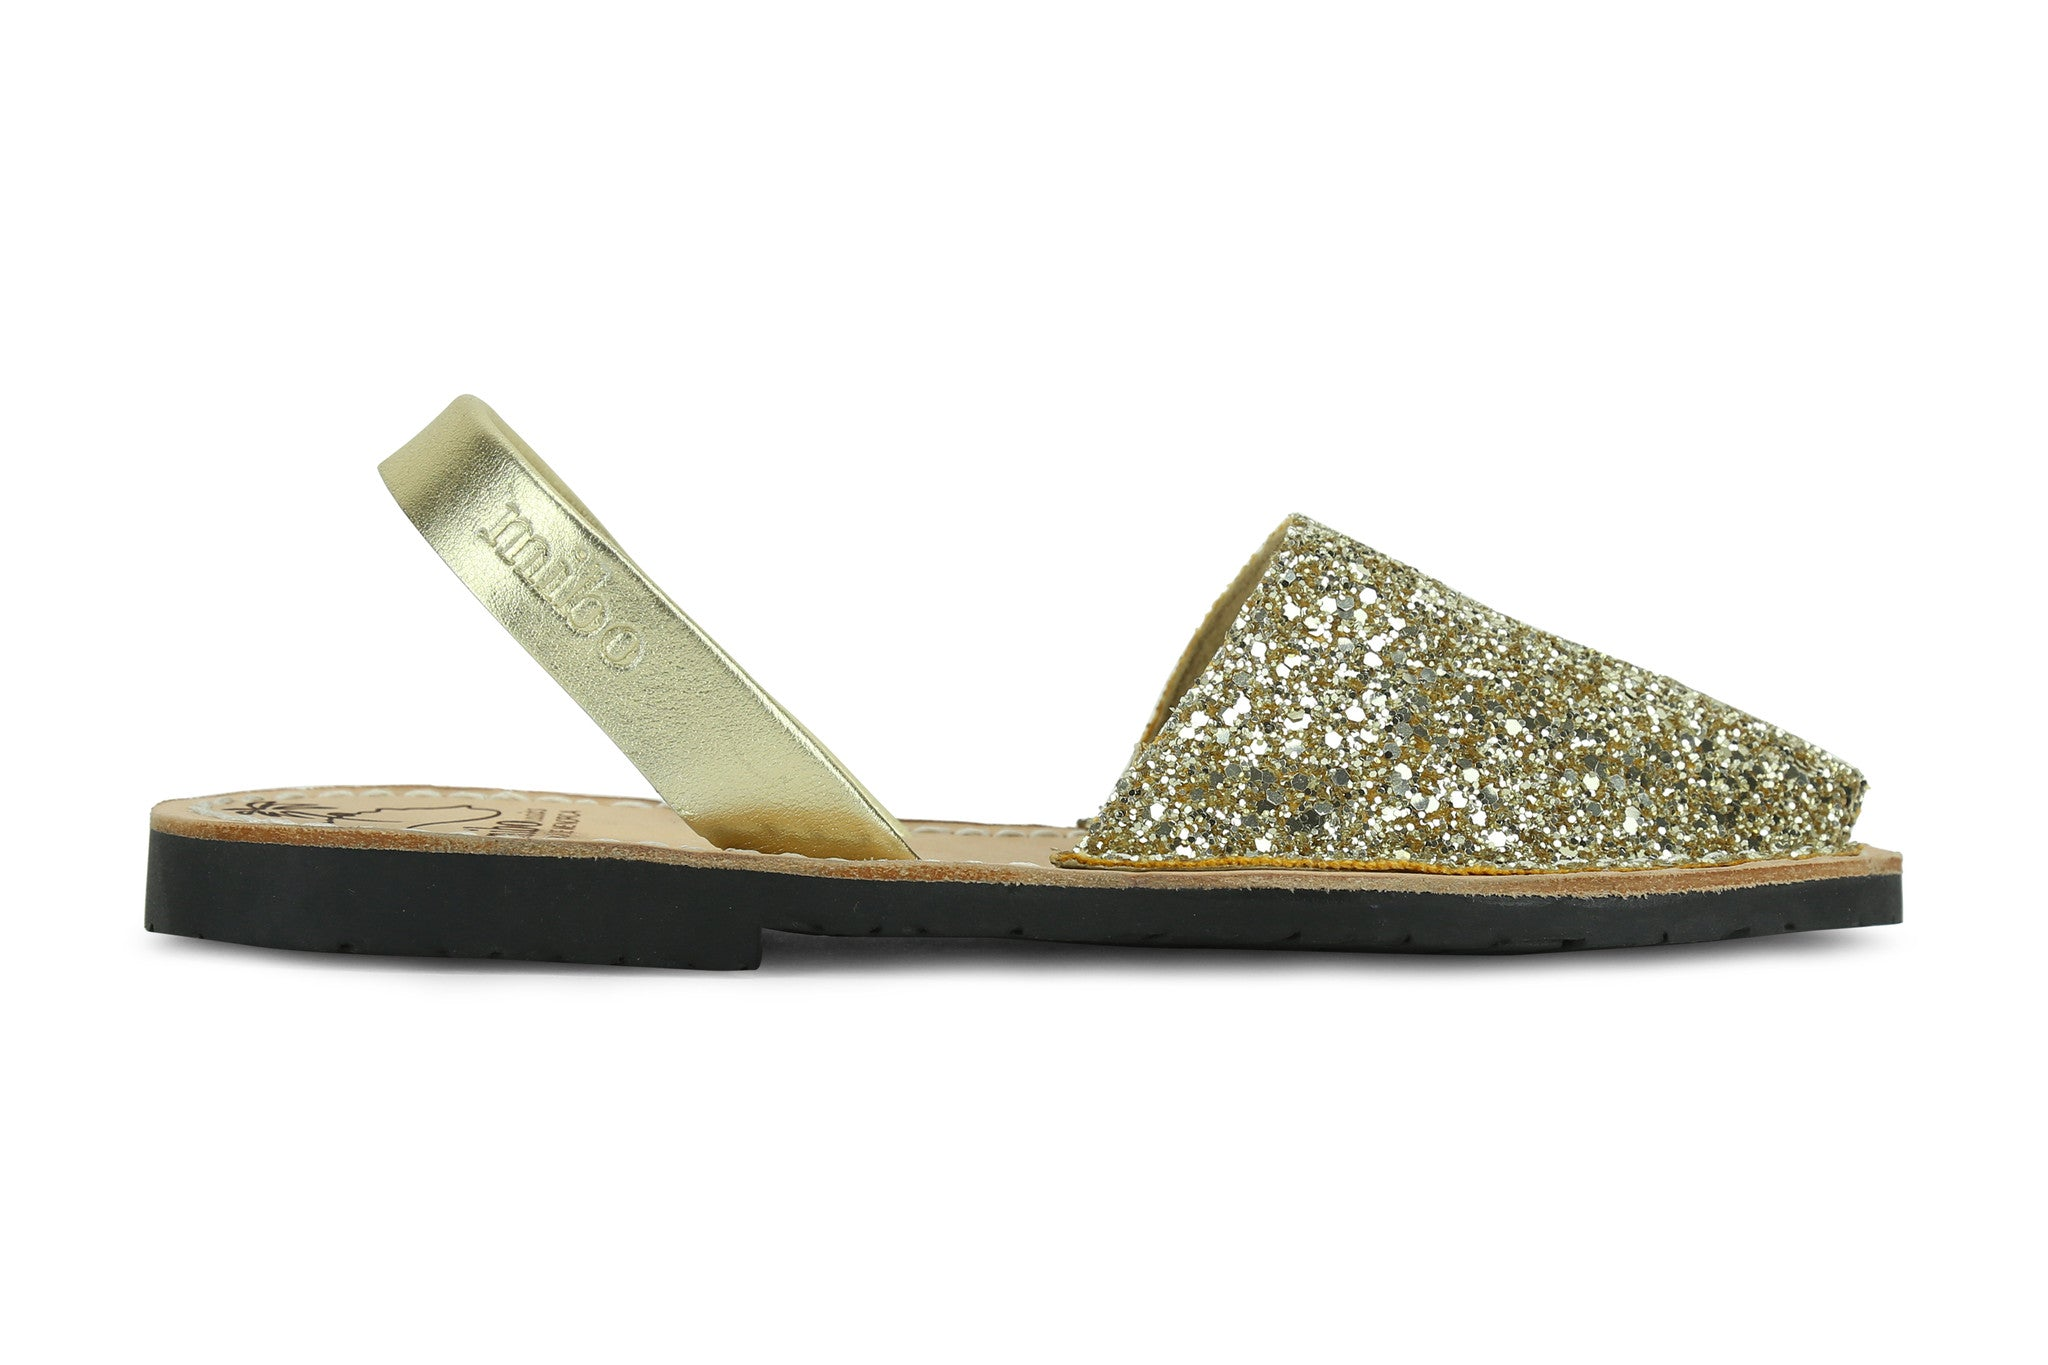 a07d45f39efb Castell Avarcas Women's Classics Glitter Gold Leather Slingback Sandals -  THE AVARCA STORE